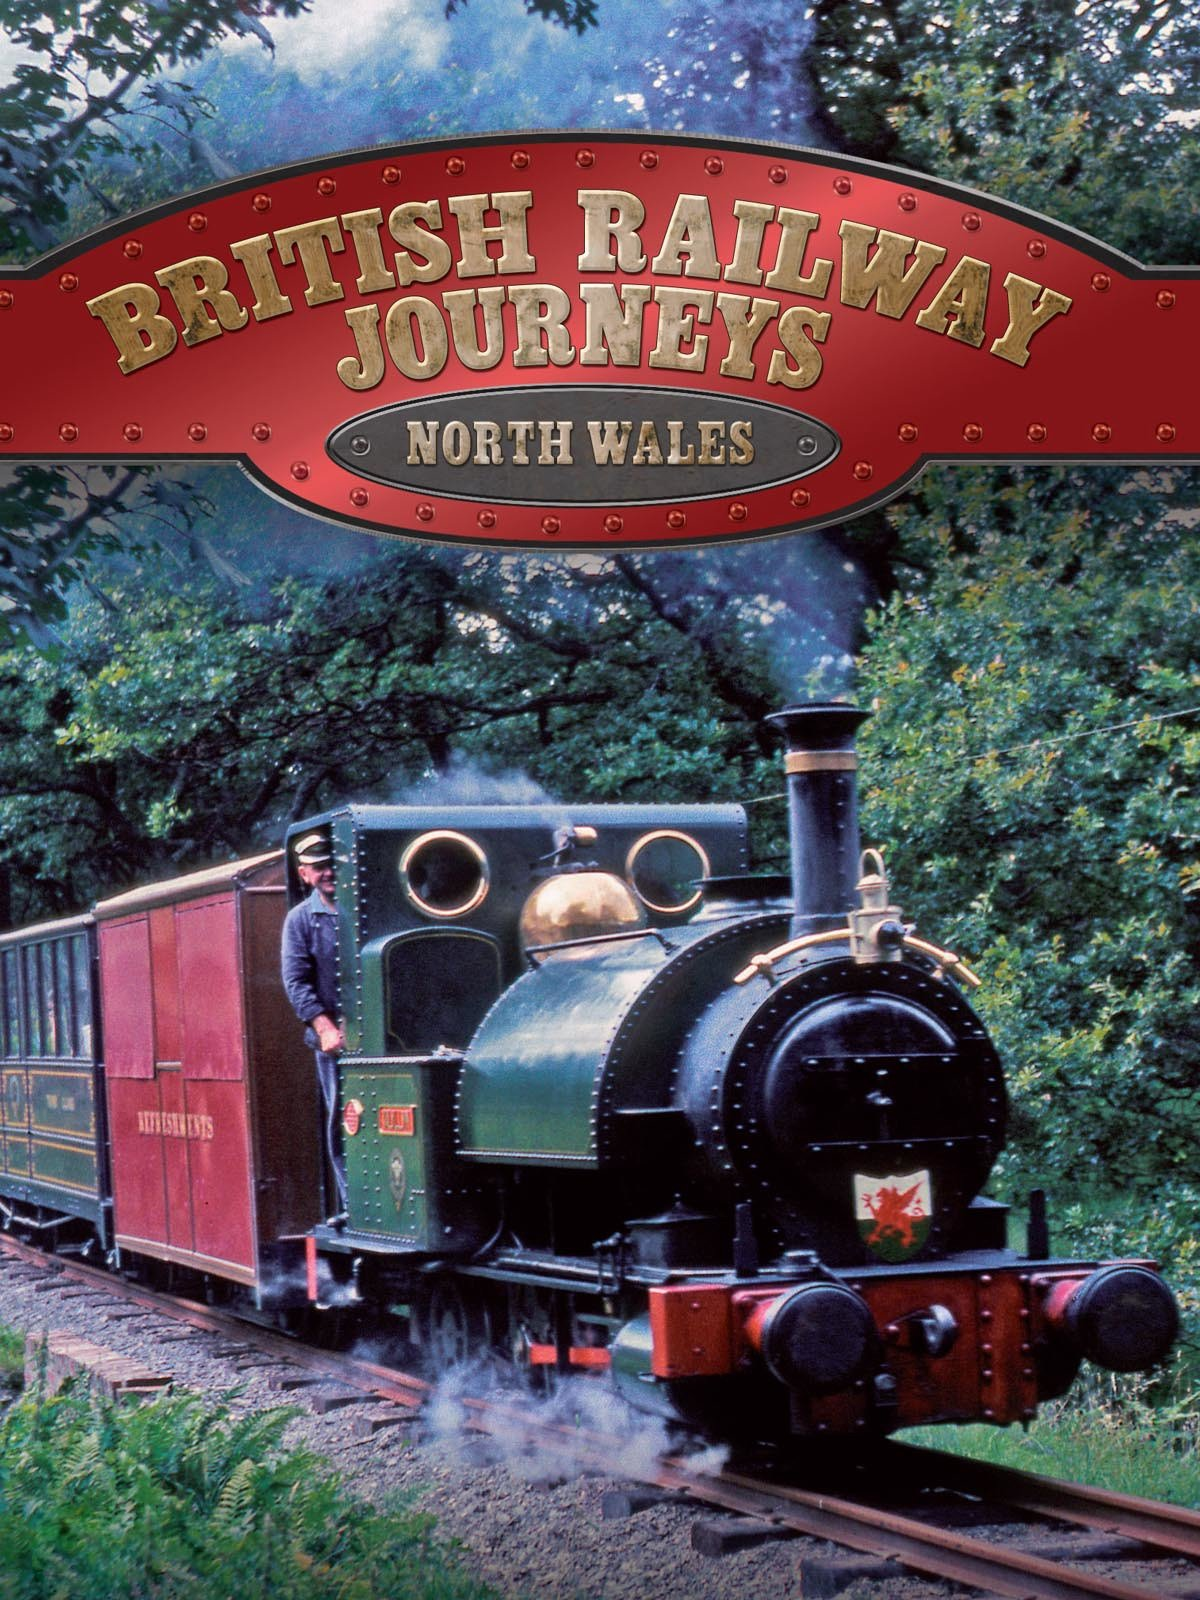 British Railway Journeys: North Wales